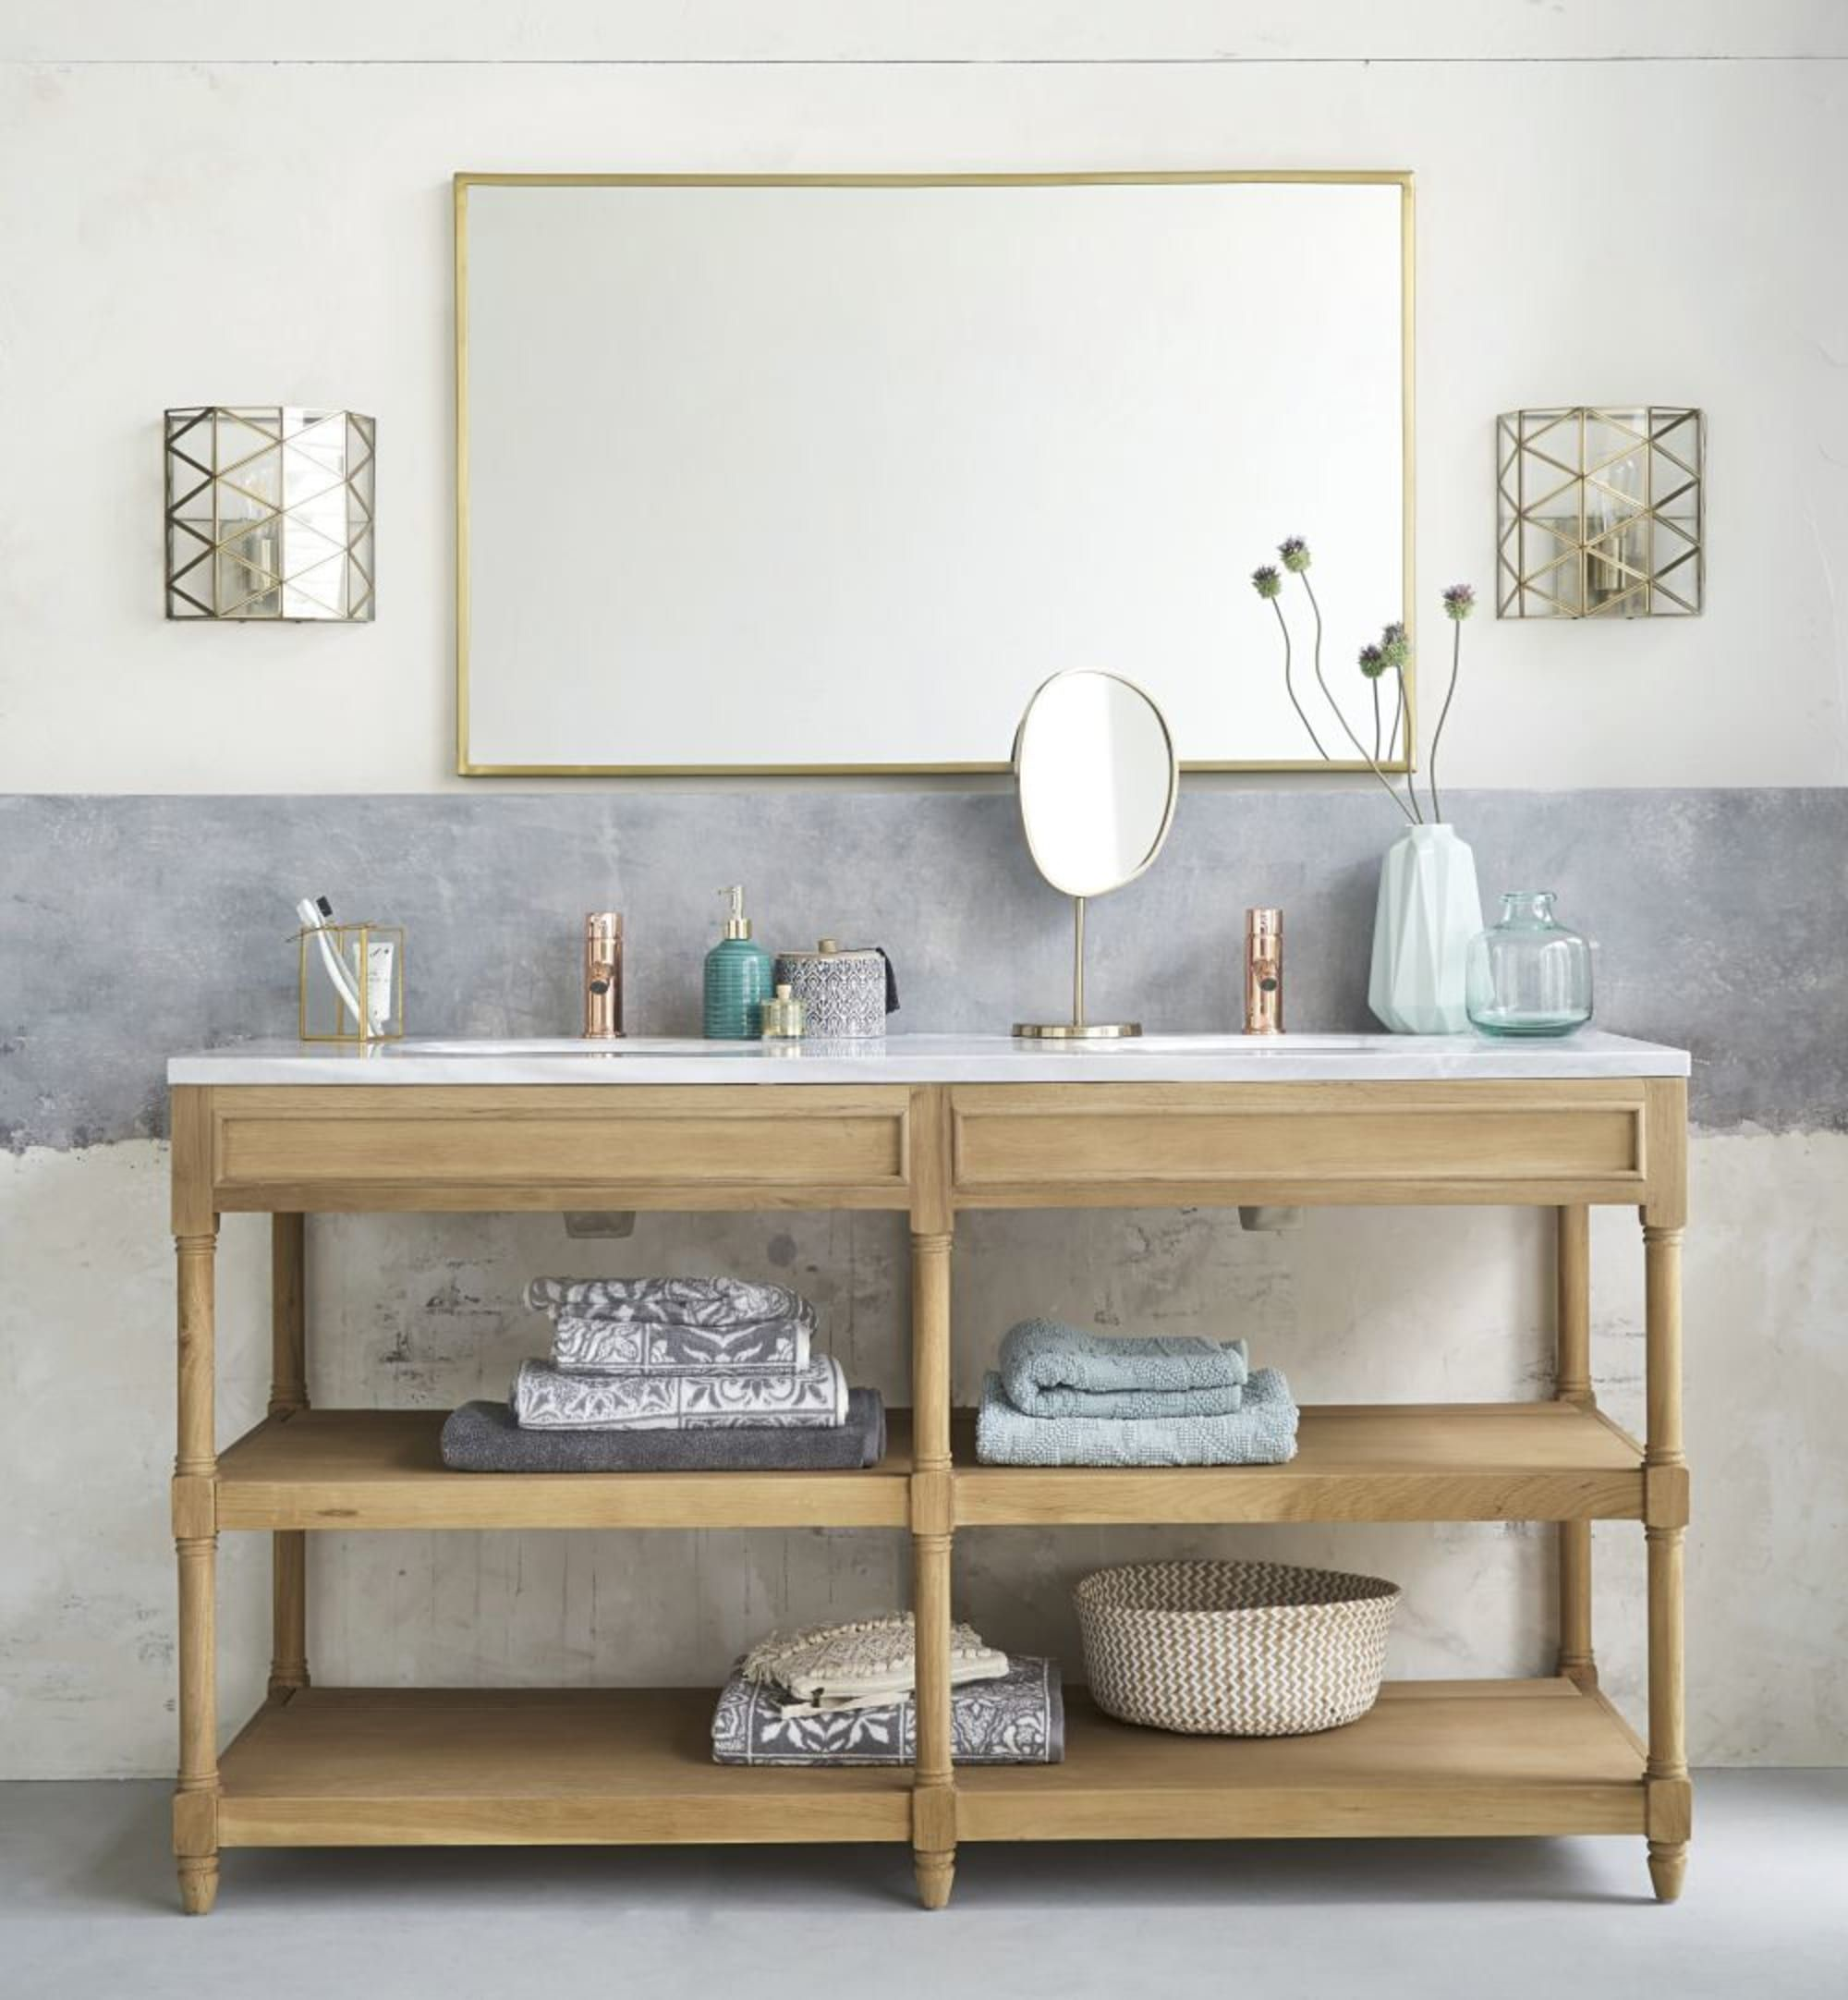 White Marble And Solid Oak Double Sink Bathroom Vanity Maisons Du Monde In 2020 Badezimmerwaschtisch Doppelwaschbecken Badezimmer Doppelwaschbecken